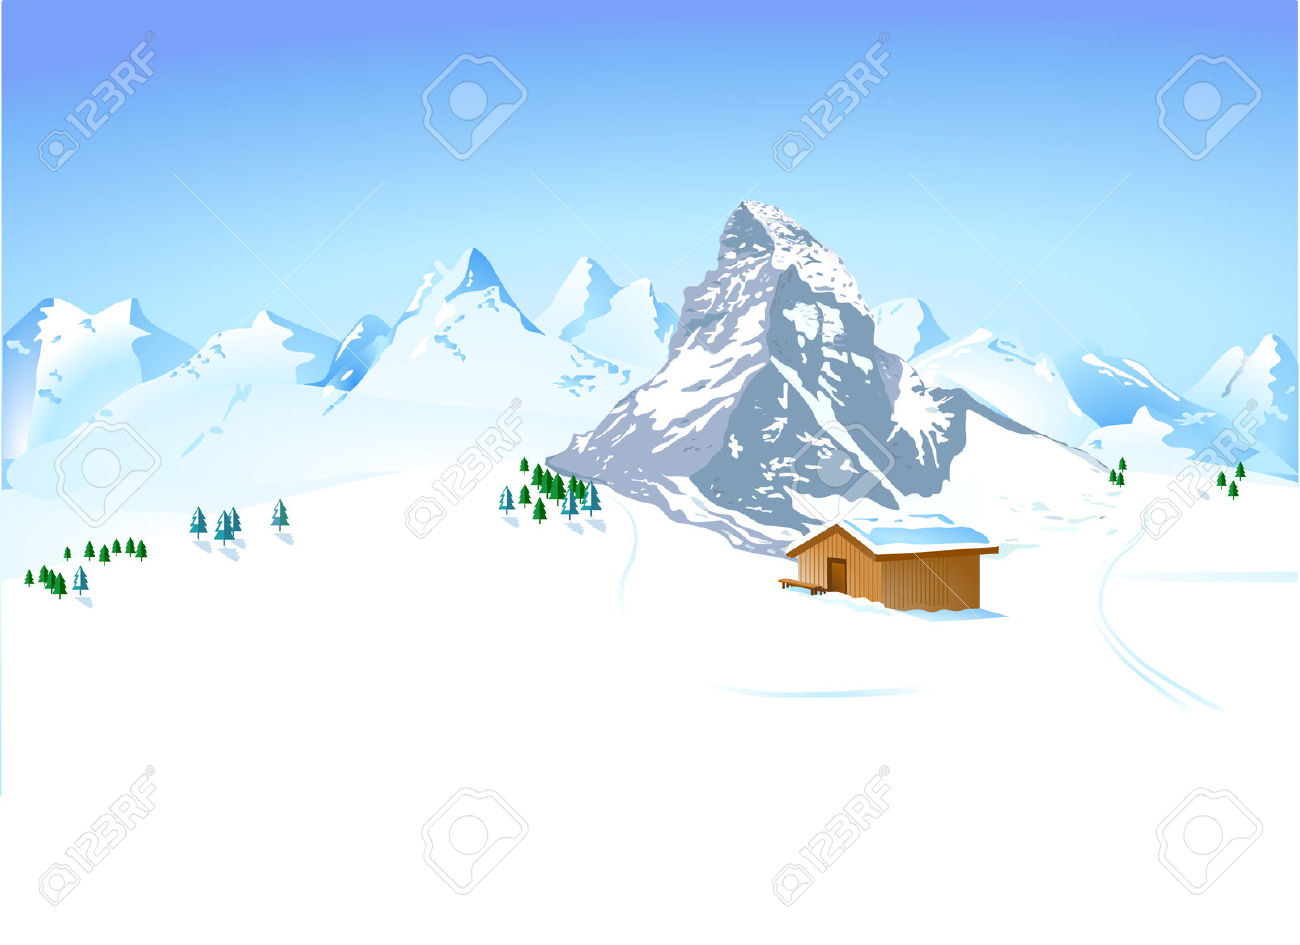 Winter mountain clipart - Clipground